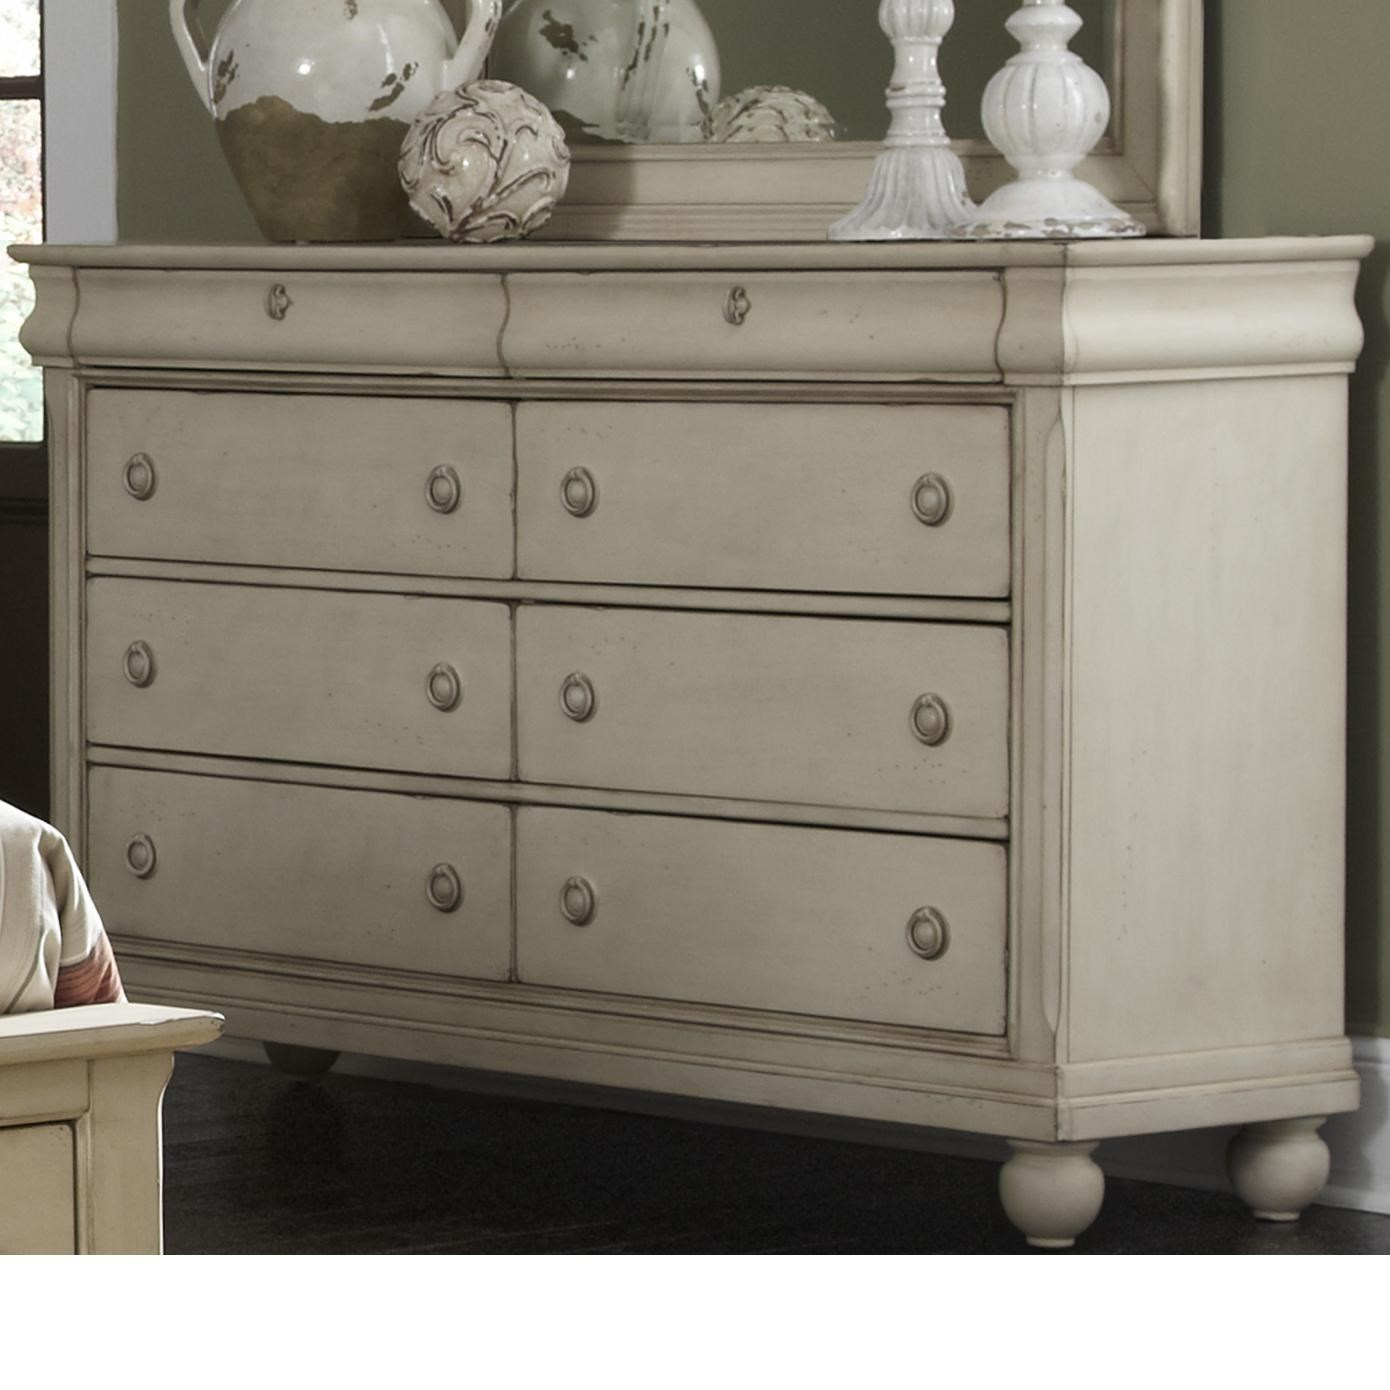 Beau Liberty Furniture Rustic Traditions Eight Drawer Dresser With Antique Brass  Hardware